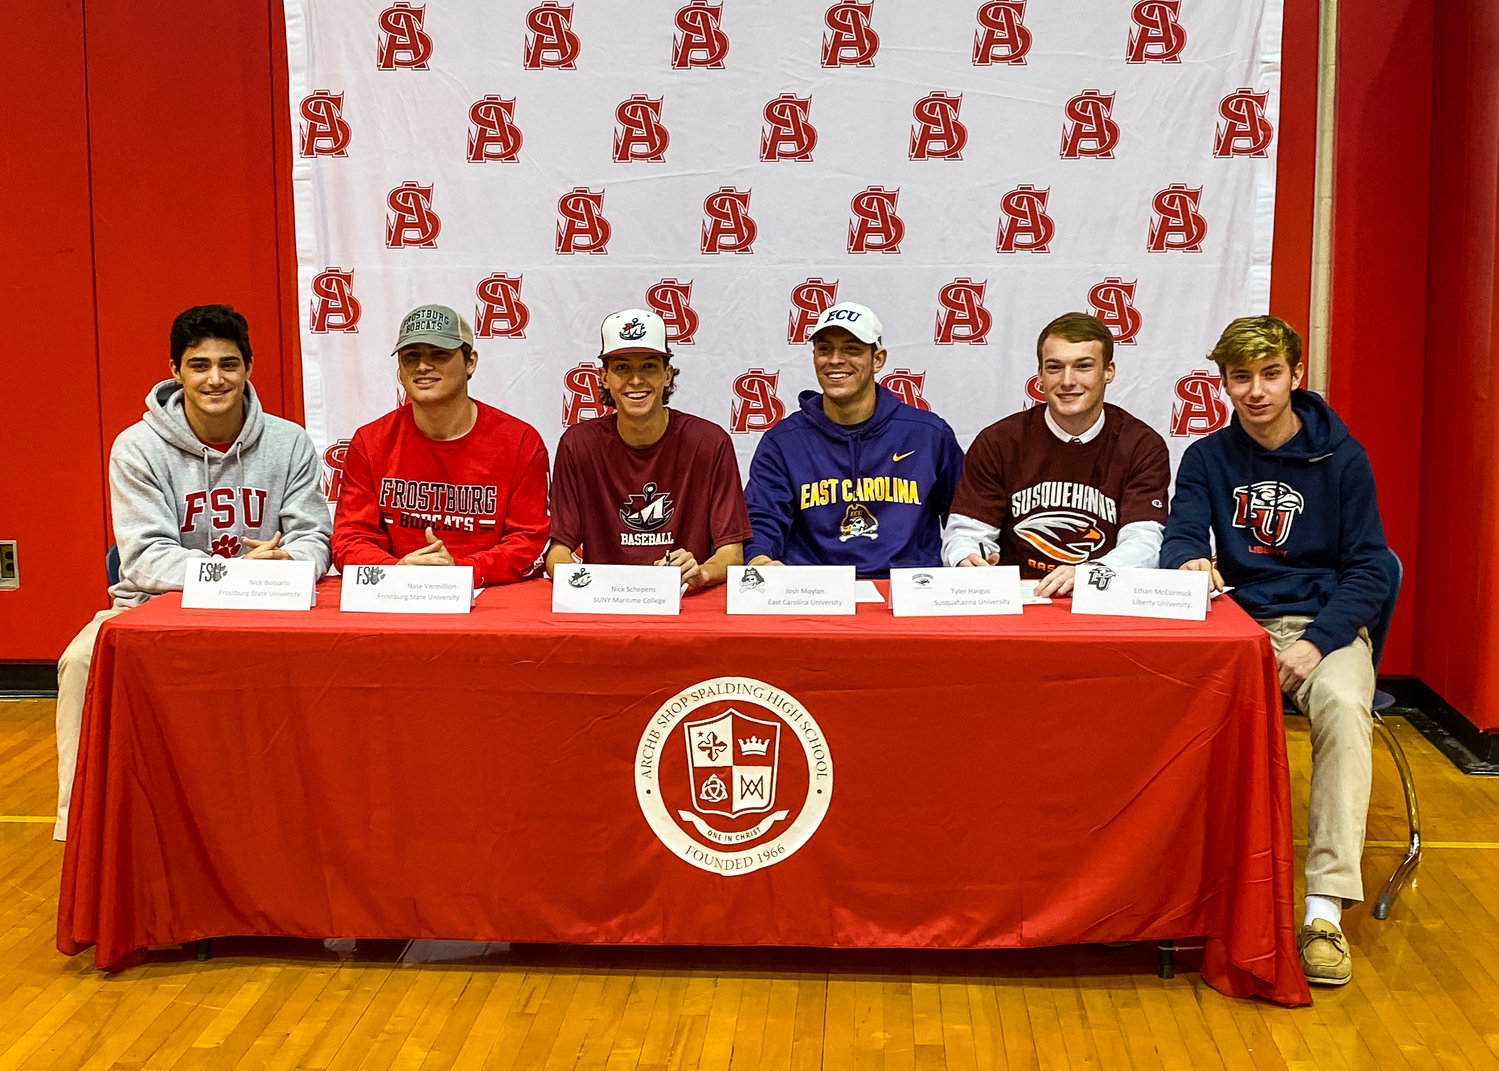 Spalding's baseball program has six student-athletes heading to play in college.